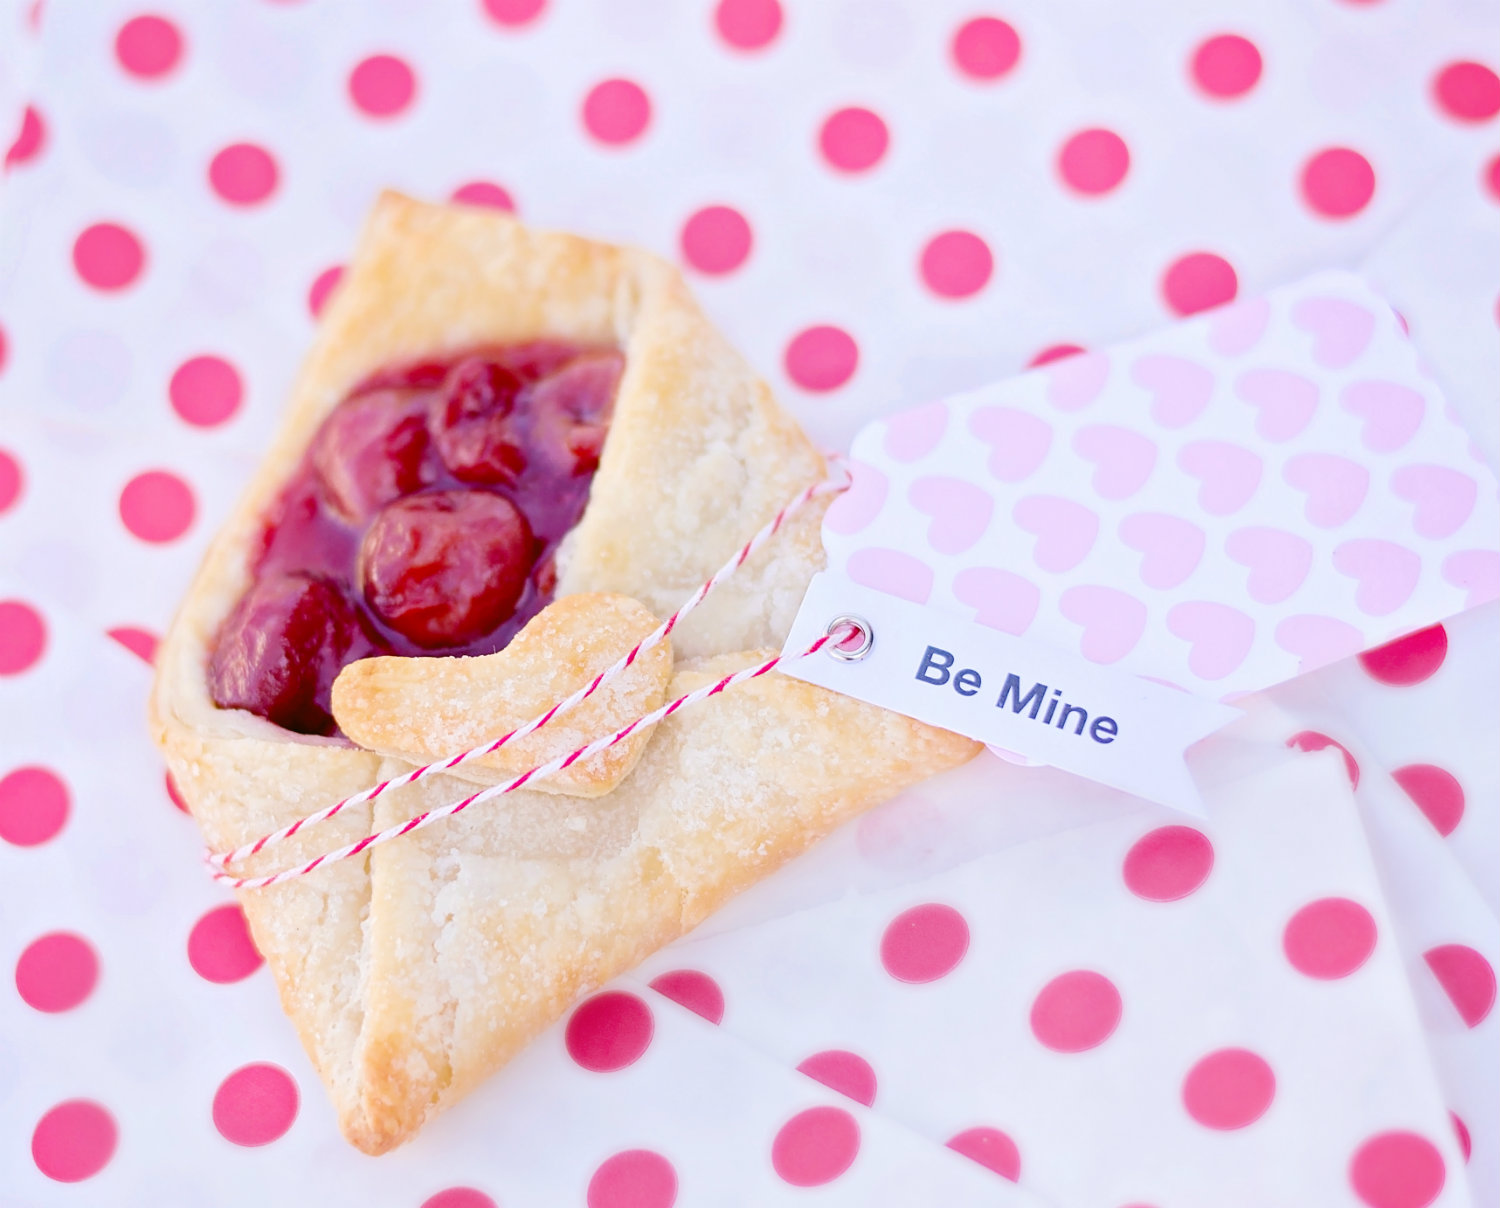 Tiny Pies_Vday Envelope Cherry Pie - web.jpg